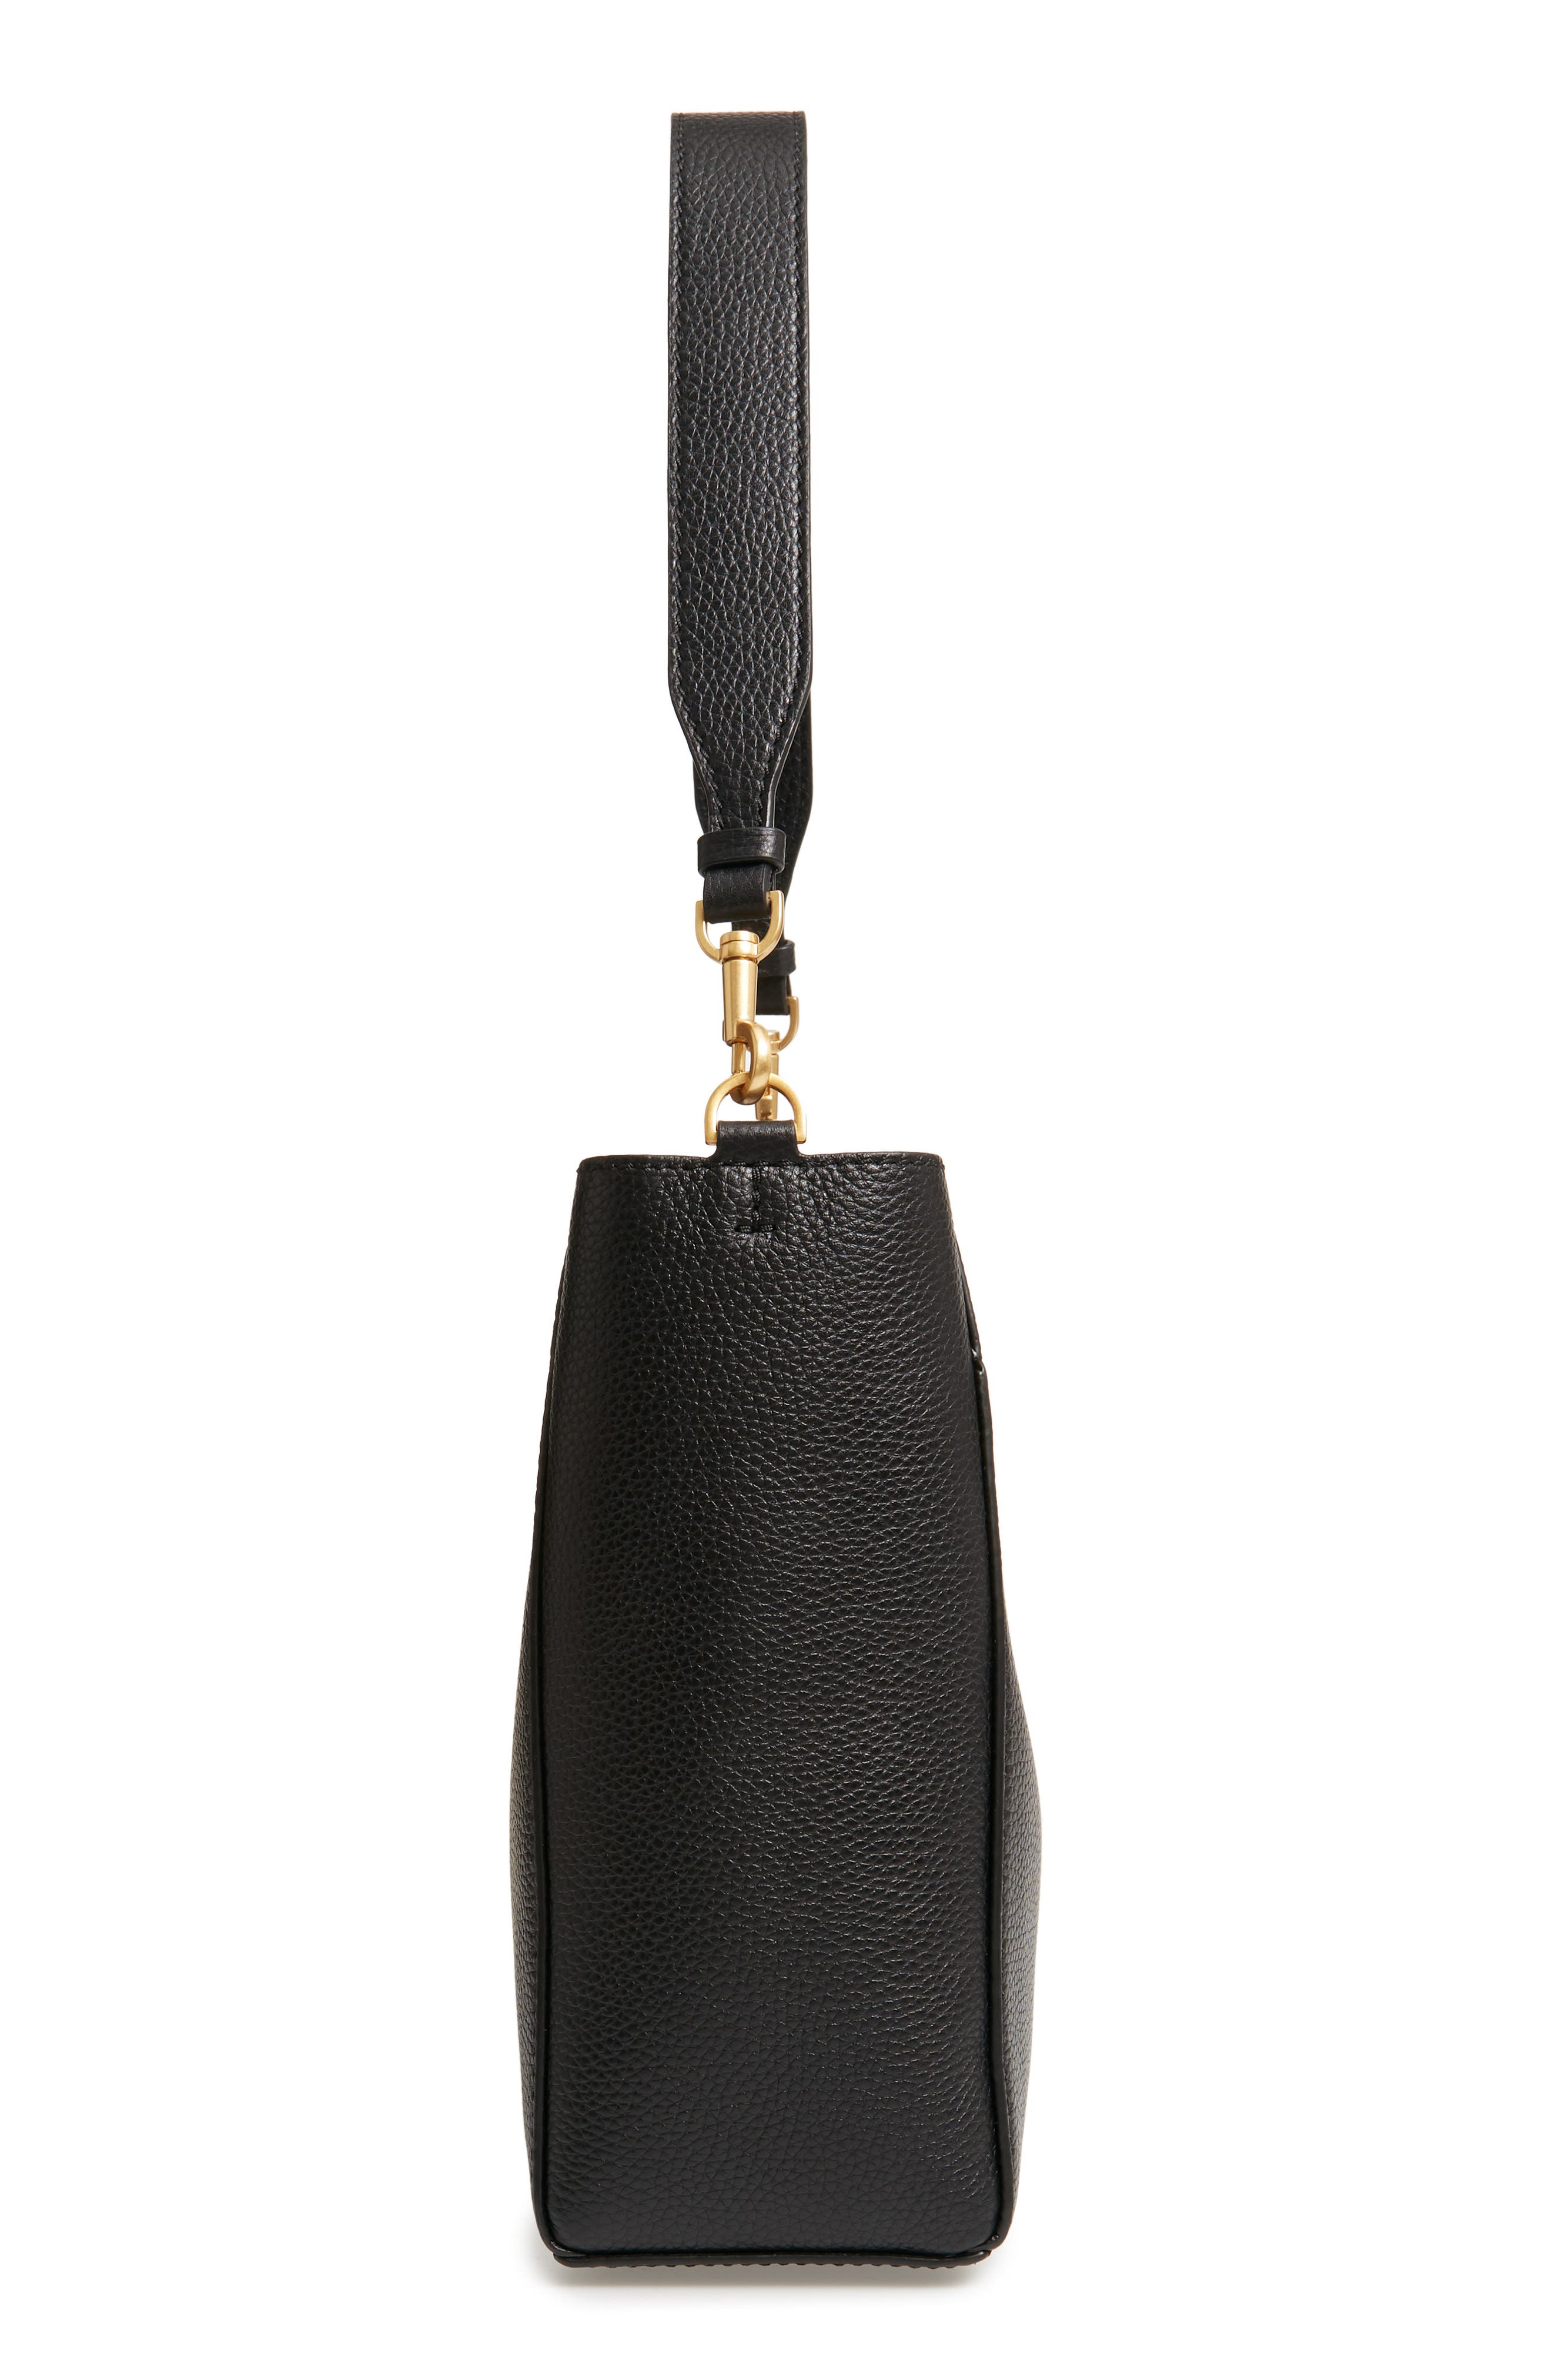 TORY BURCH, McGraw Leather Hobo, Alternate thumbnail 7, color, BLACK